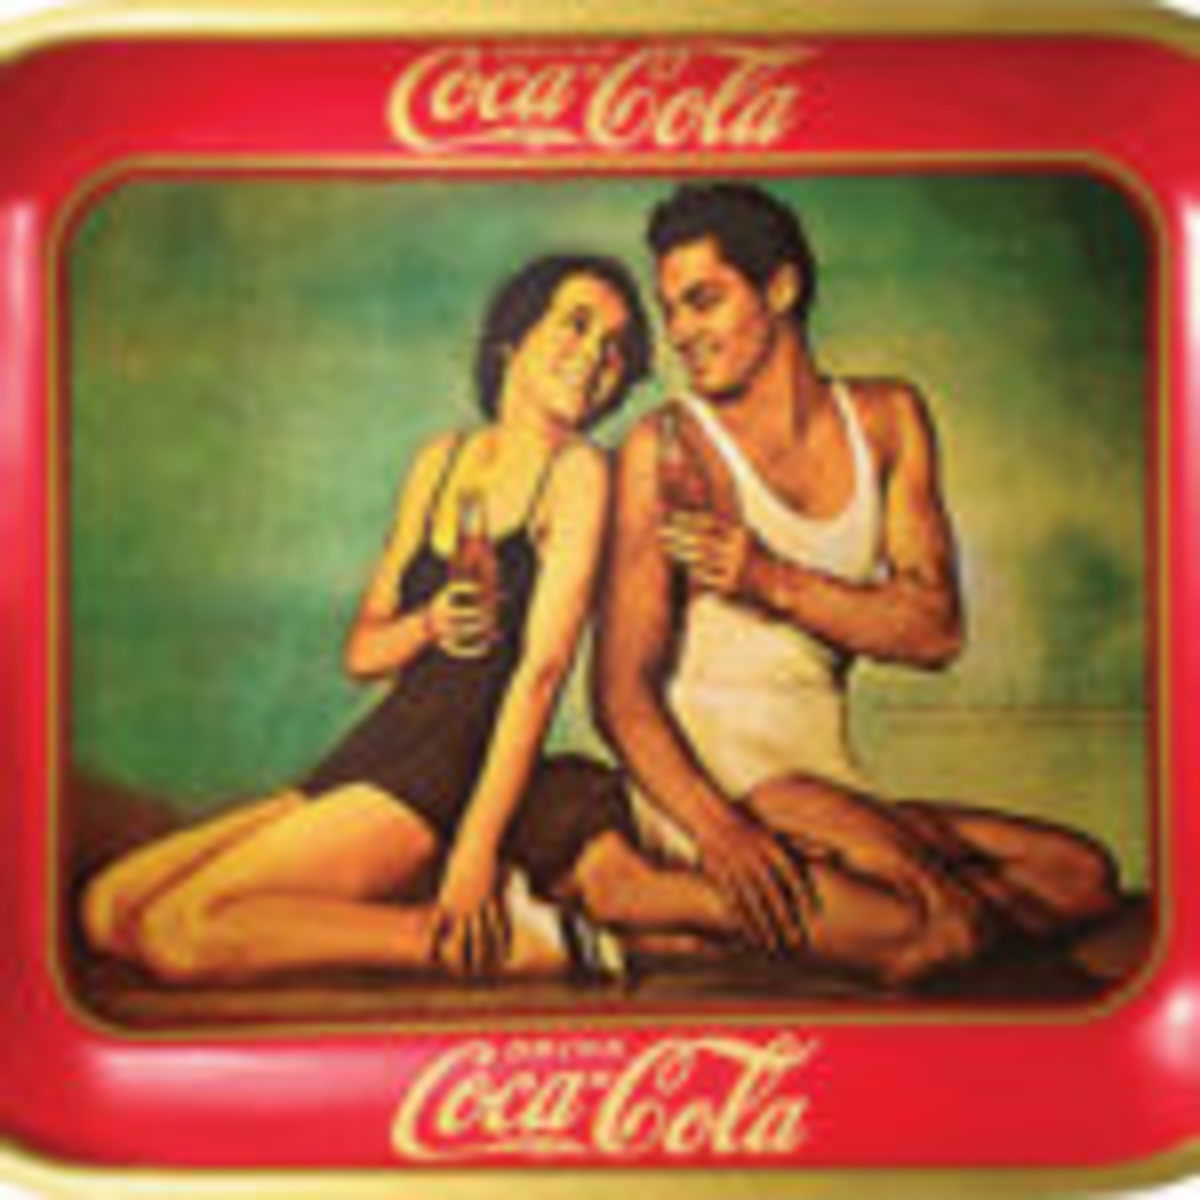 Figure 4: Reproduction Coca-Cola tray. From the Martin Guide to Coca-Cola Memorabilia (used with permission).